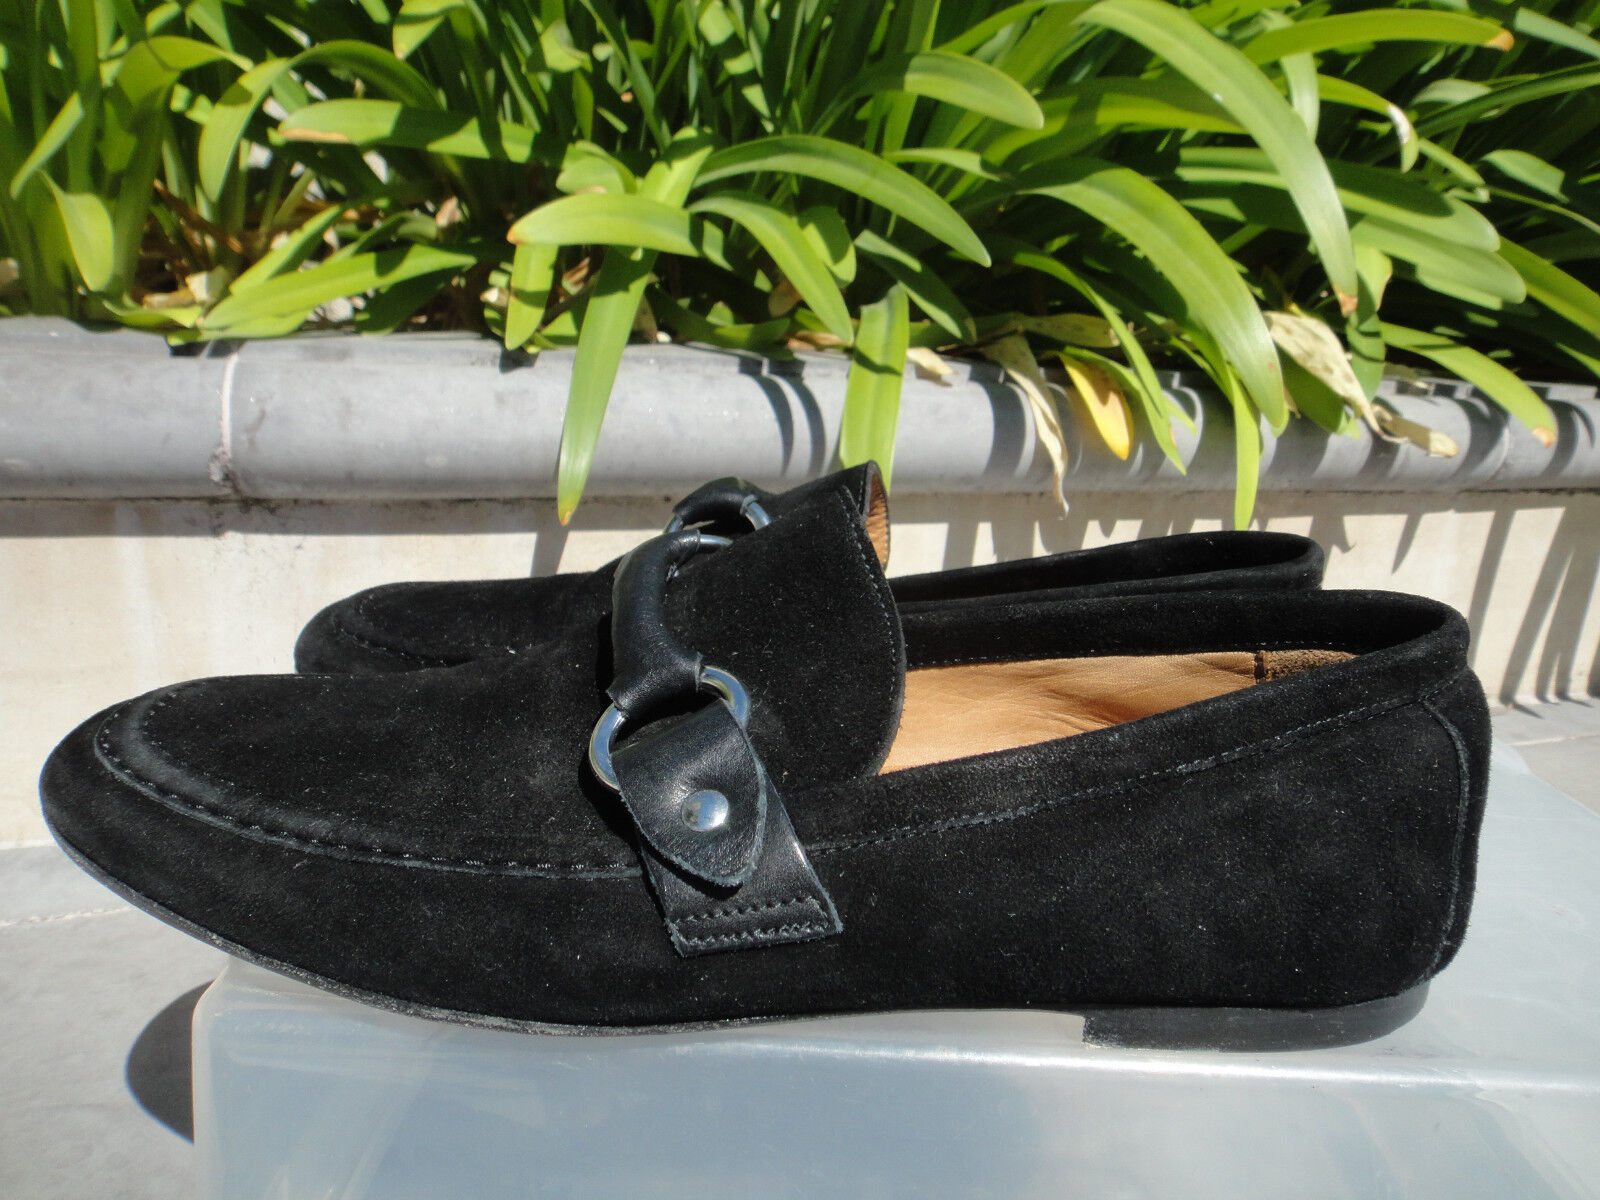 Isabel Marant FARLOW Loafer, Suede Leather Silber Hardware, Wmns' Wmns' Wmns' Sz FR37  485 5830a1